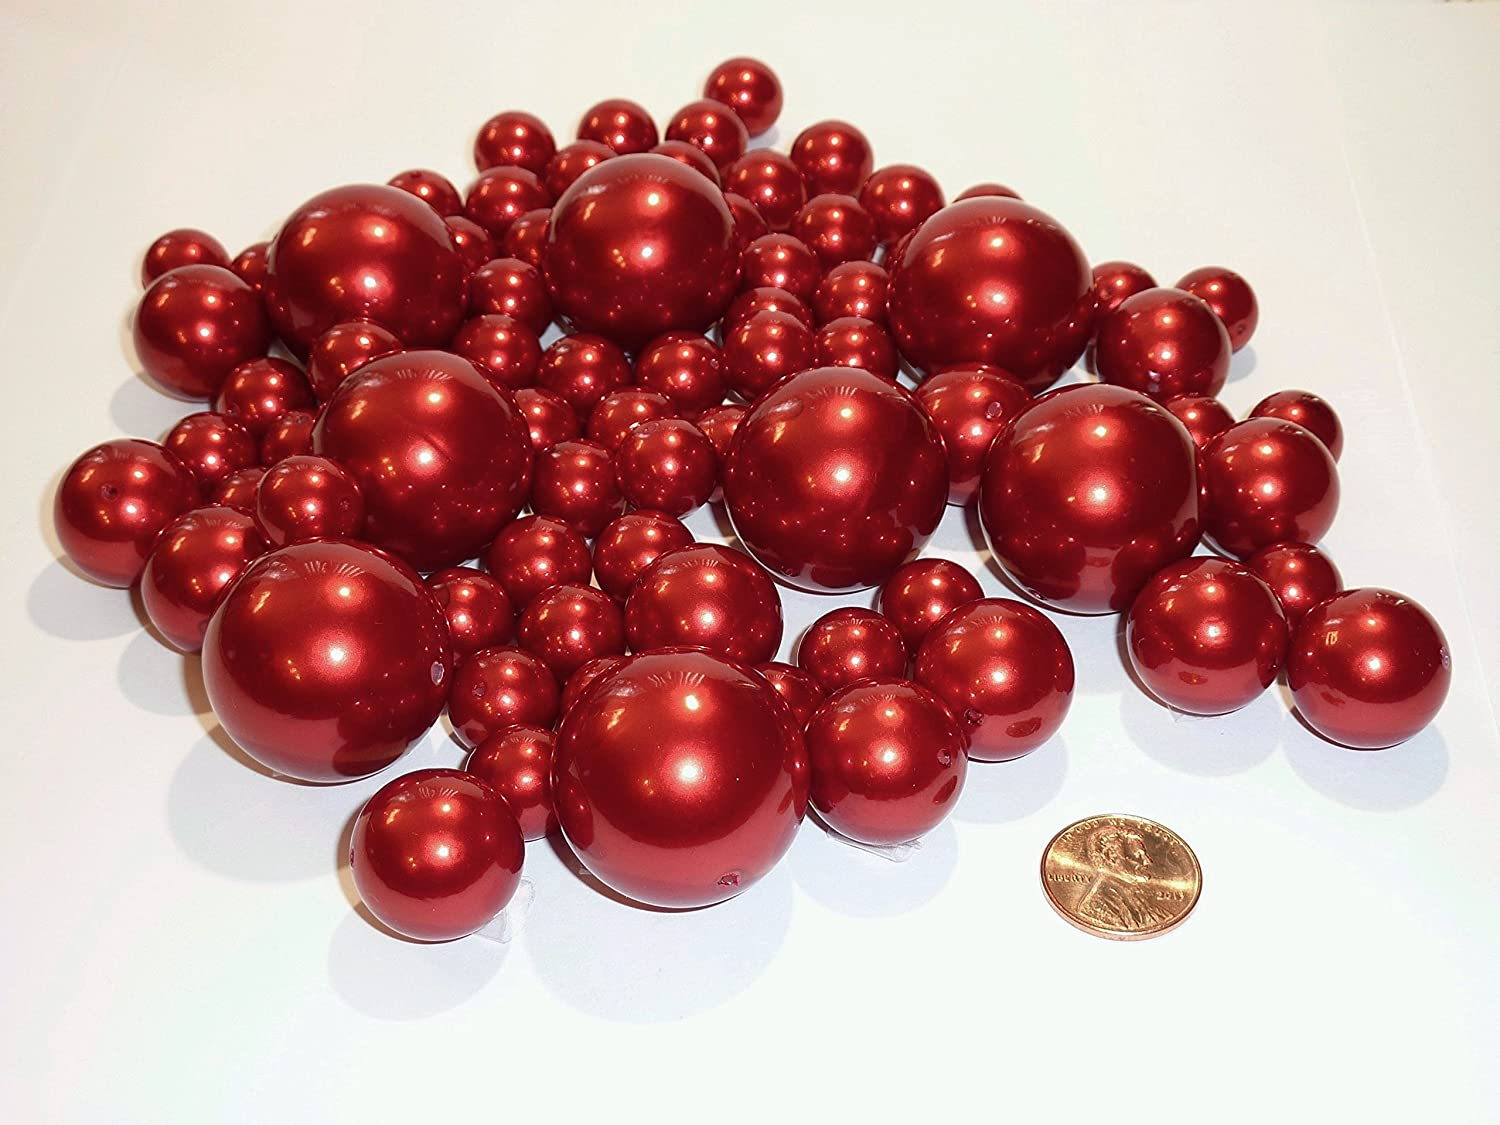 Shop amazon vase fillers 2 packs jumbo assorted sizes all red pearls vase fillers value pack for centerpieces reviewsmspy